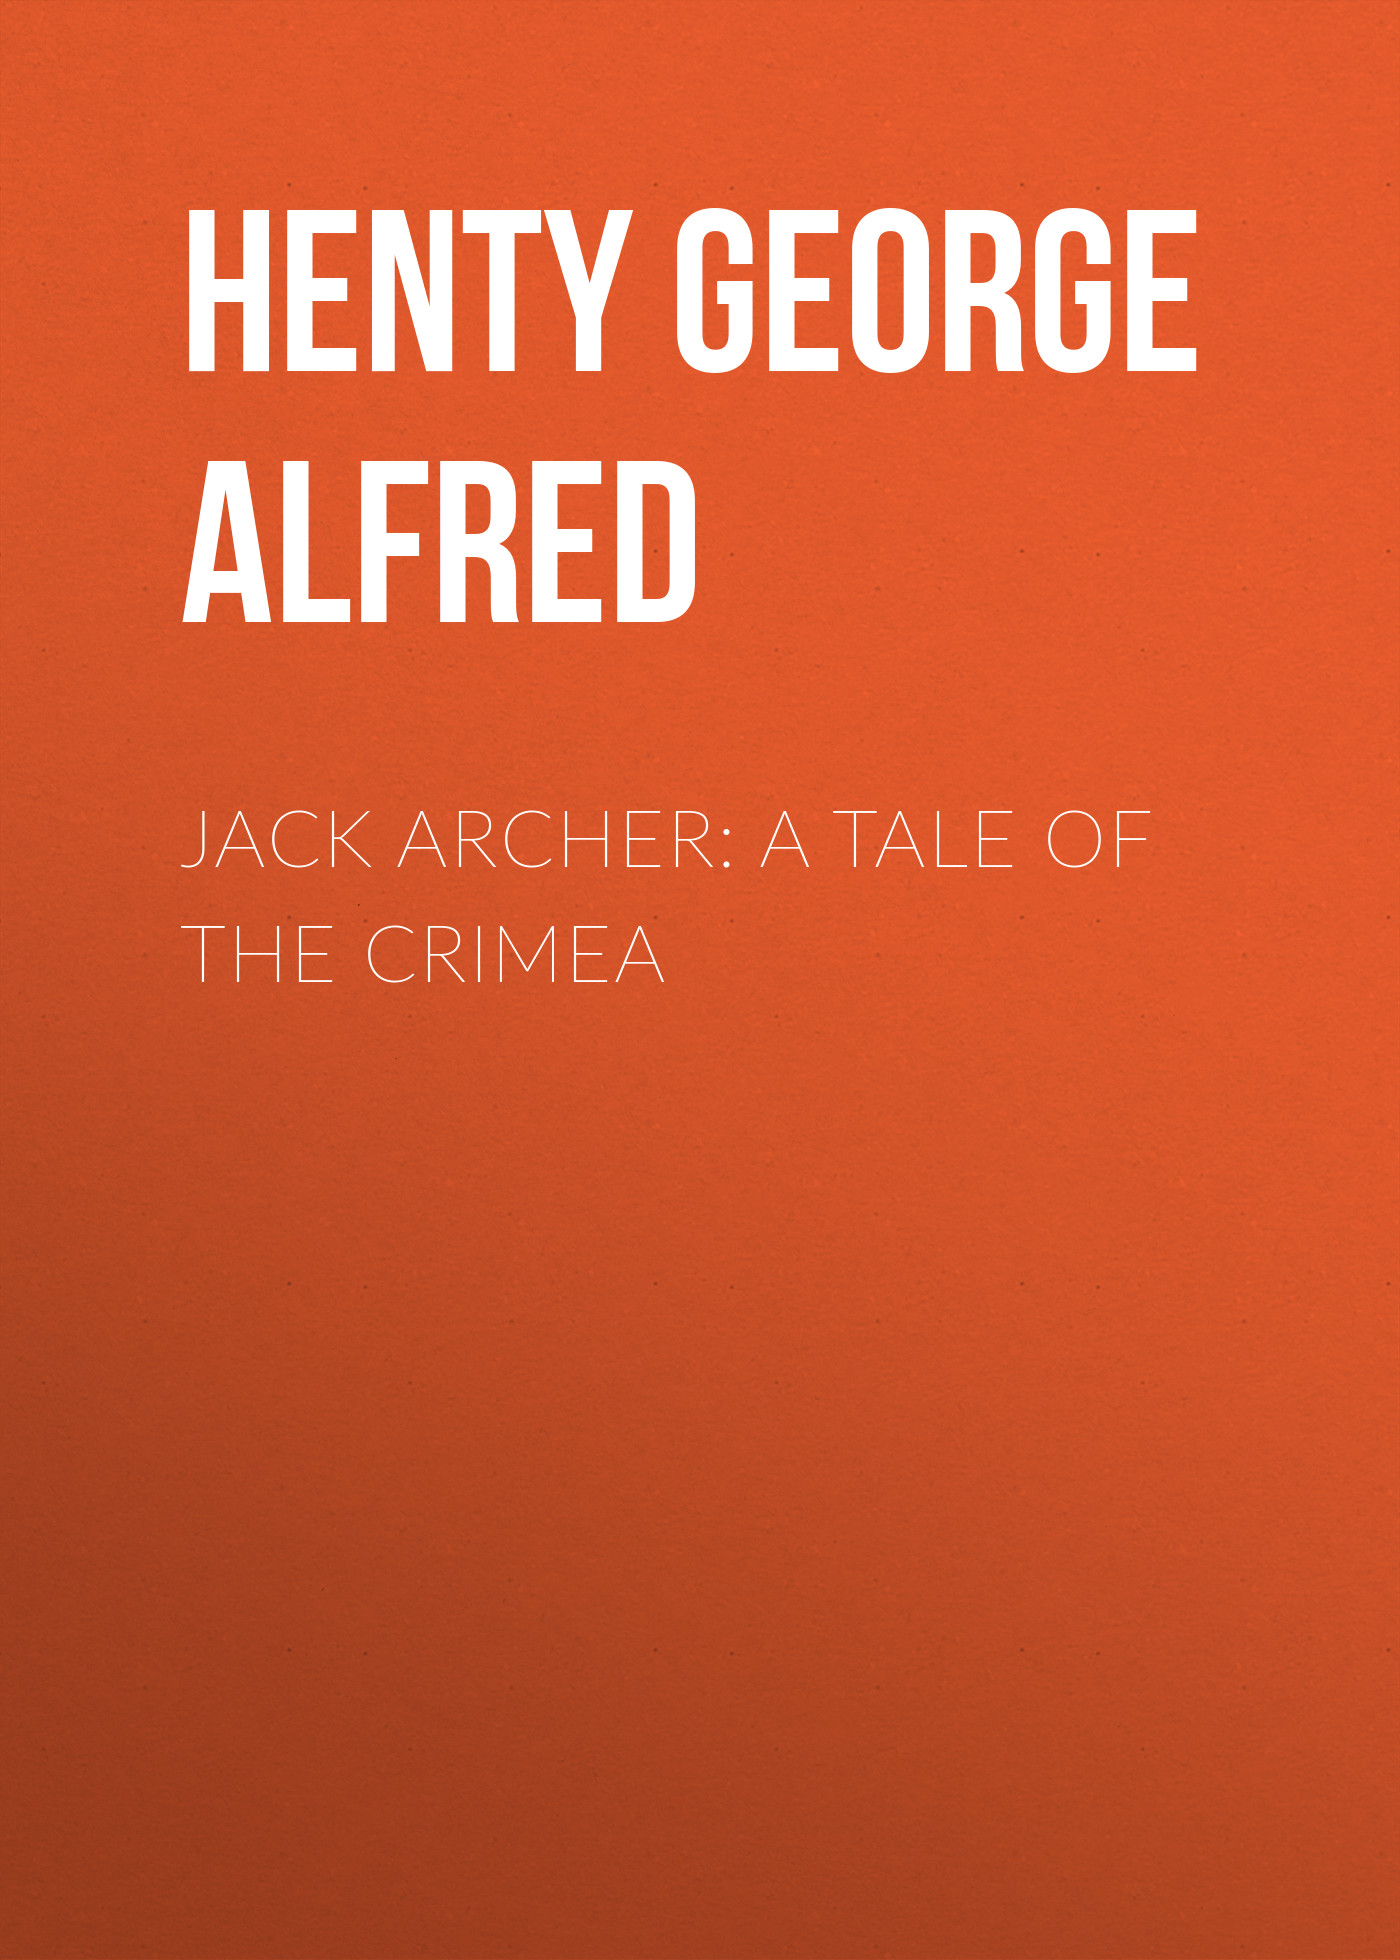 Henty George Alfred Jack Archer: A Tale of the Crimea henty george alfred st george for england a tale of cressy and poitiers